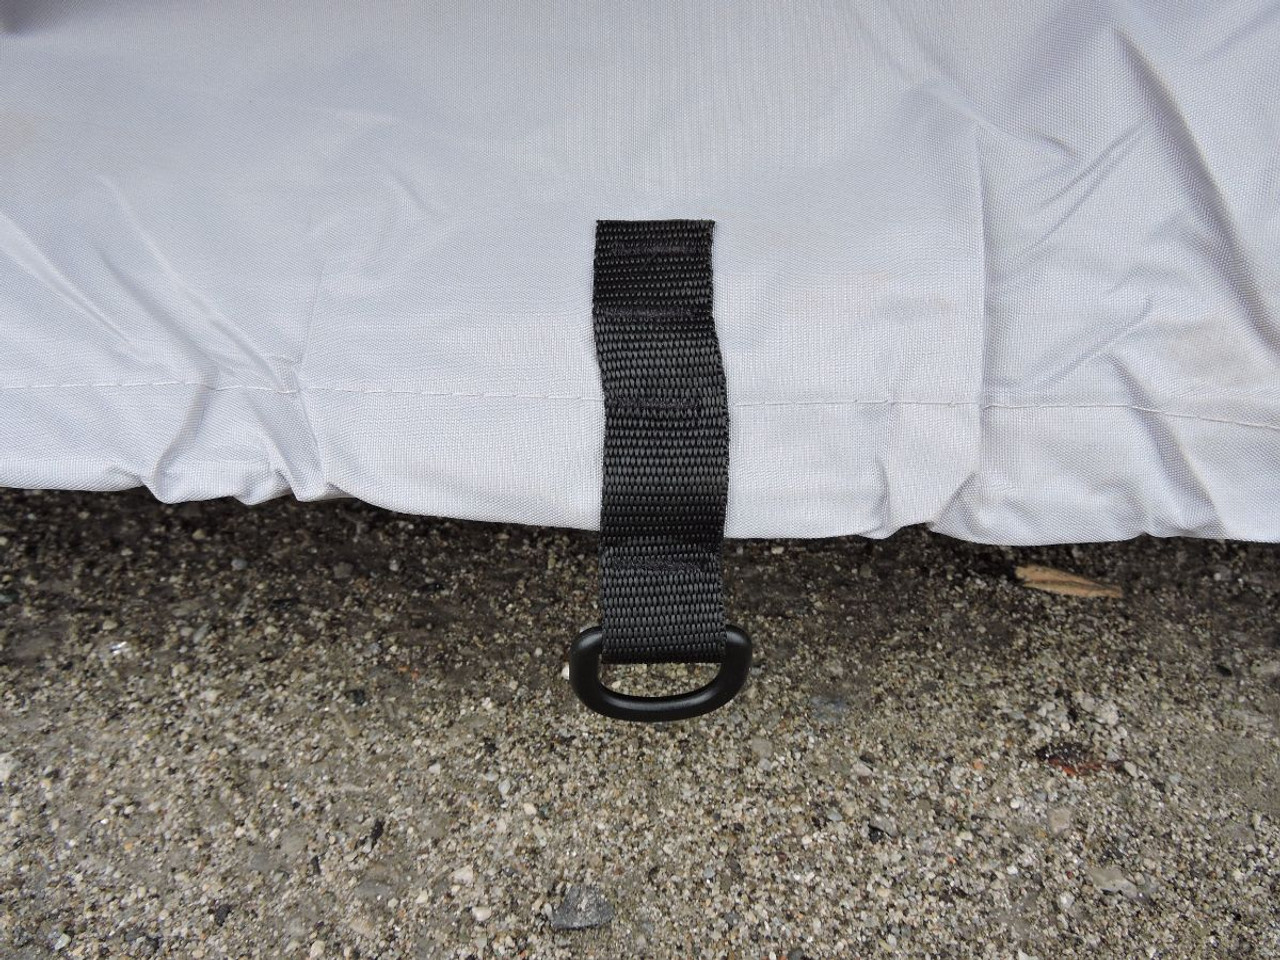 Venture UTV side by side cover secure tie elastic cord hem and tie downs